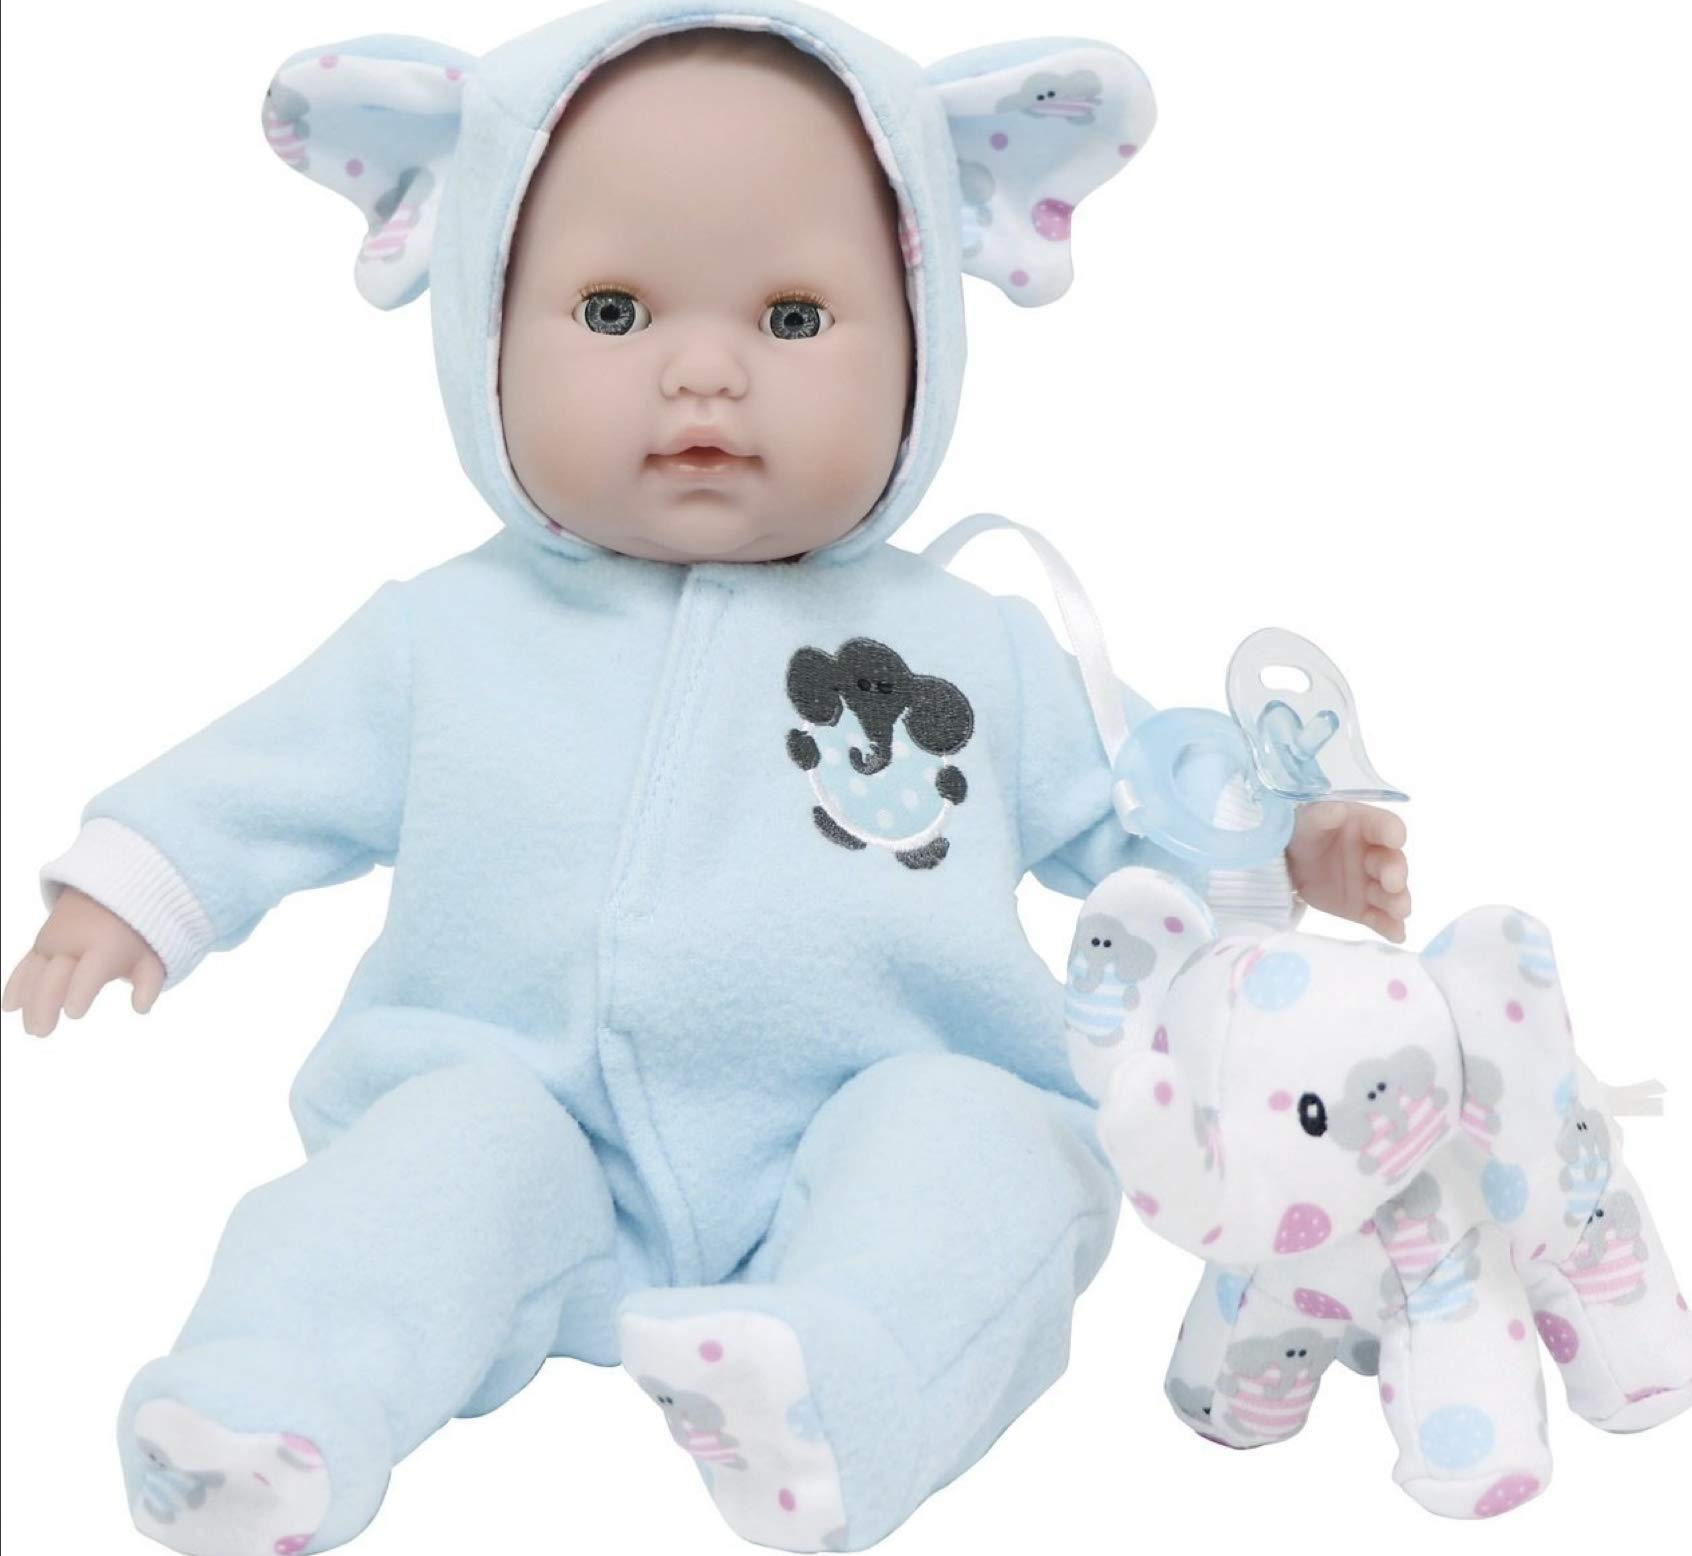 """JC Toys 15"""" Berenguer Boutique Blue Soft Body Baby Doll Open/Close Eyes with Play Elephant Accessory - Perfect for Children 2+"""